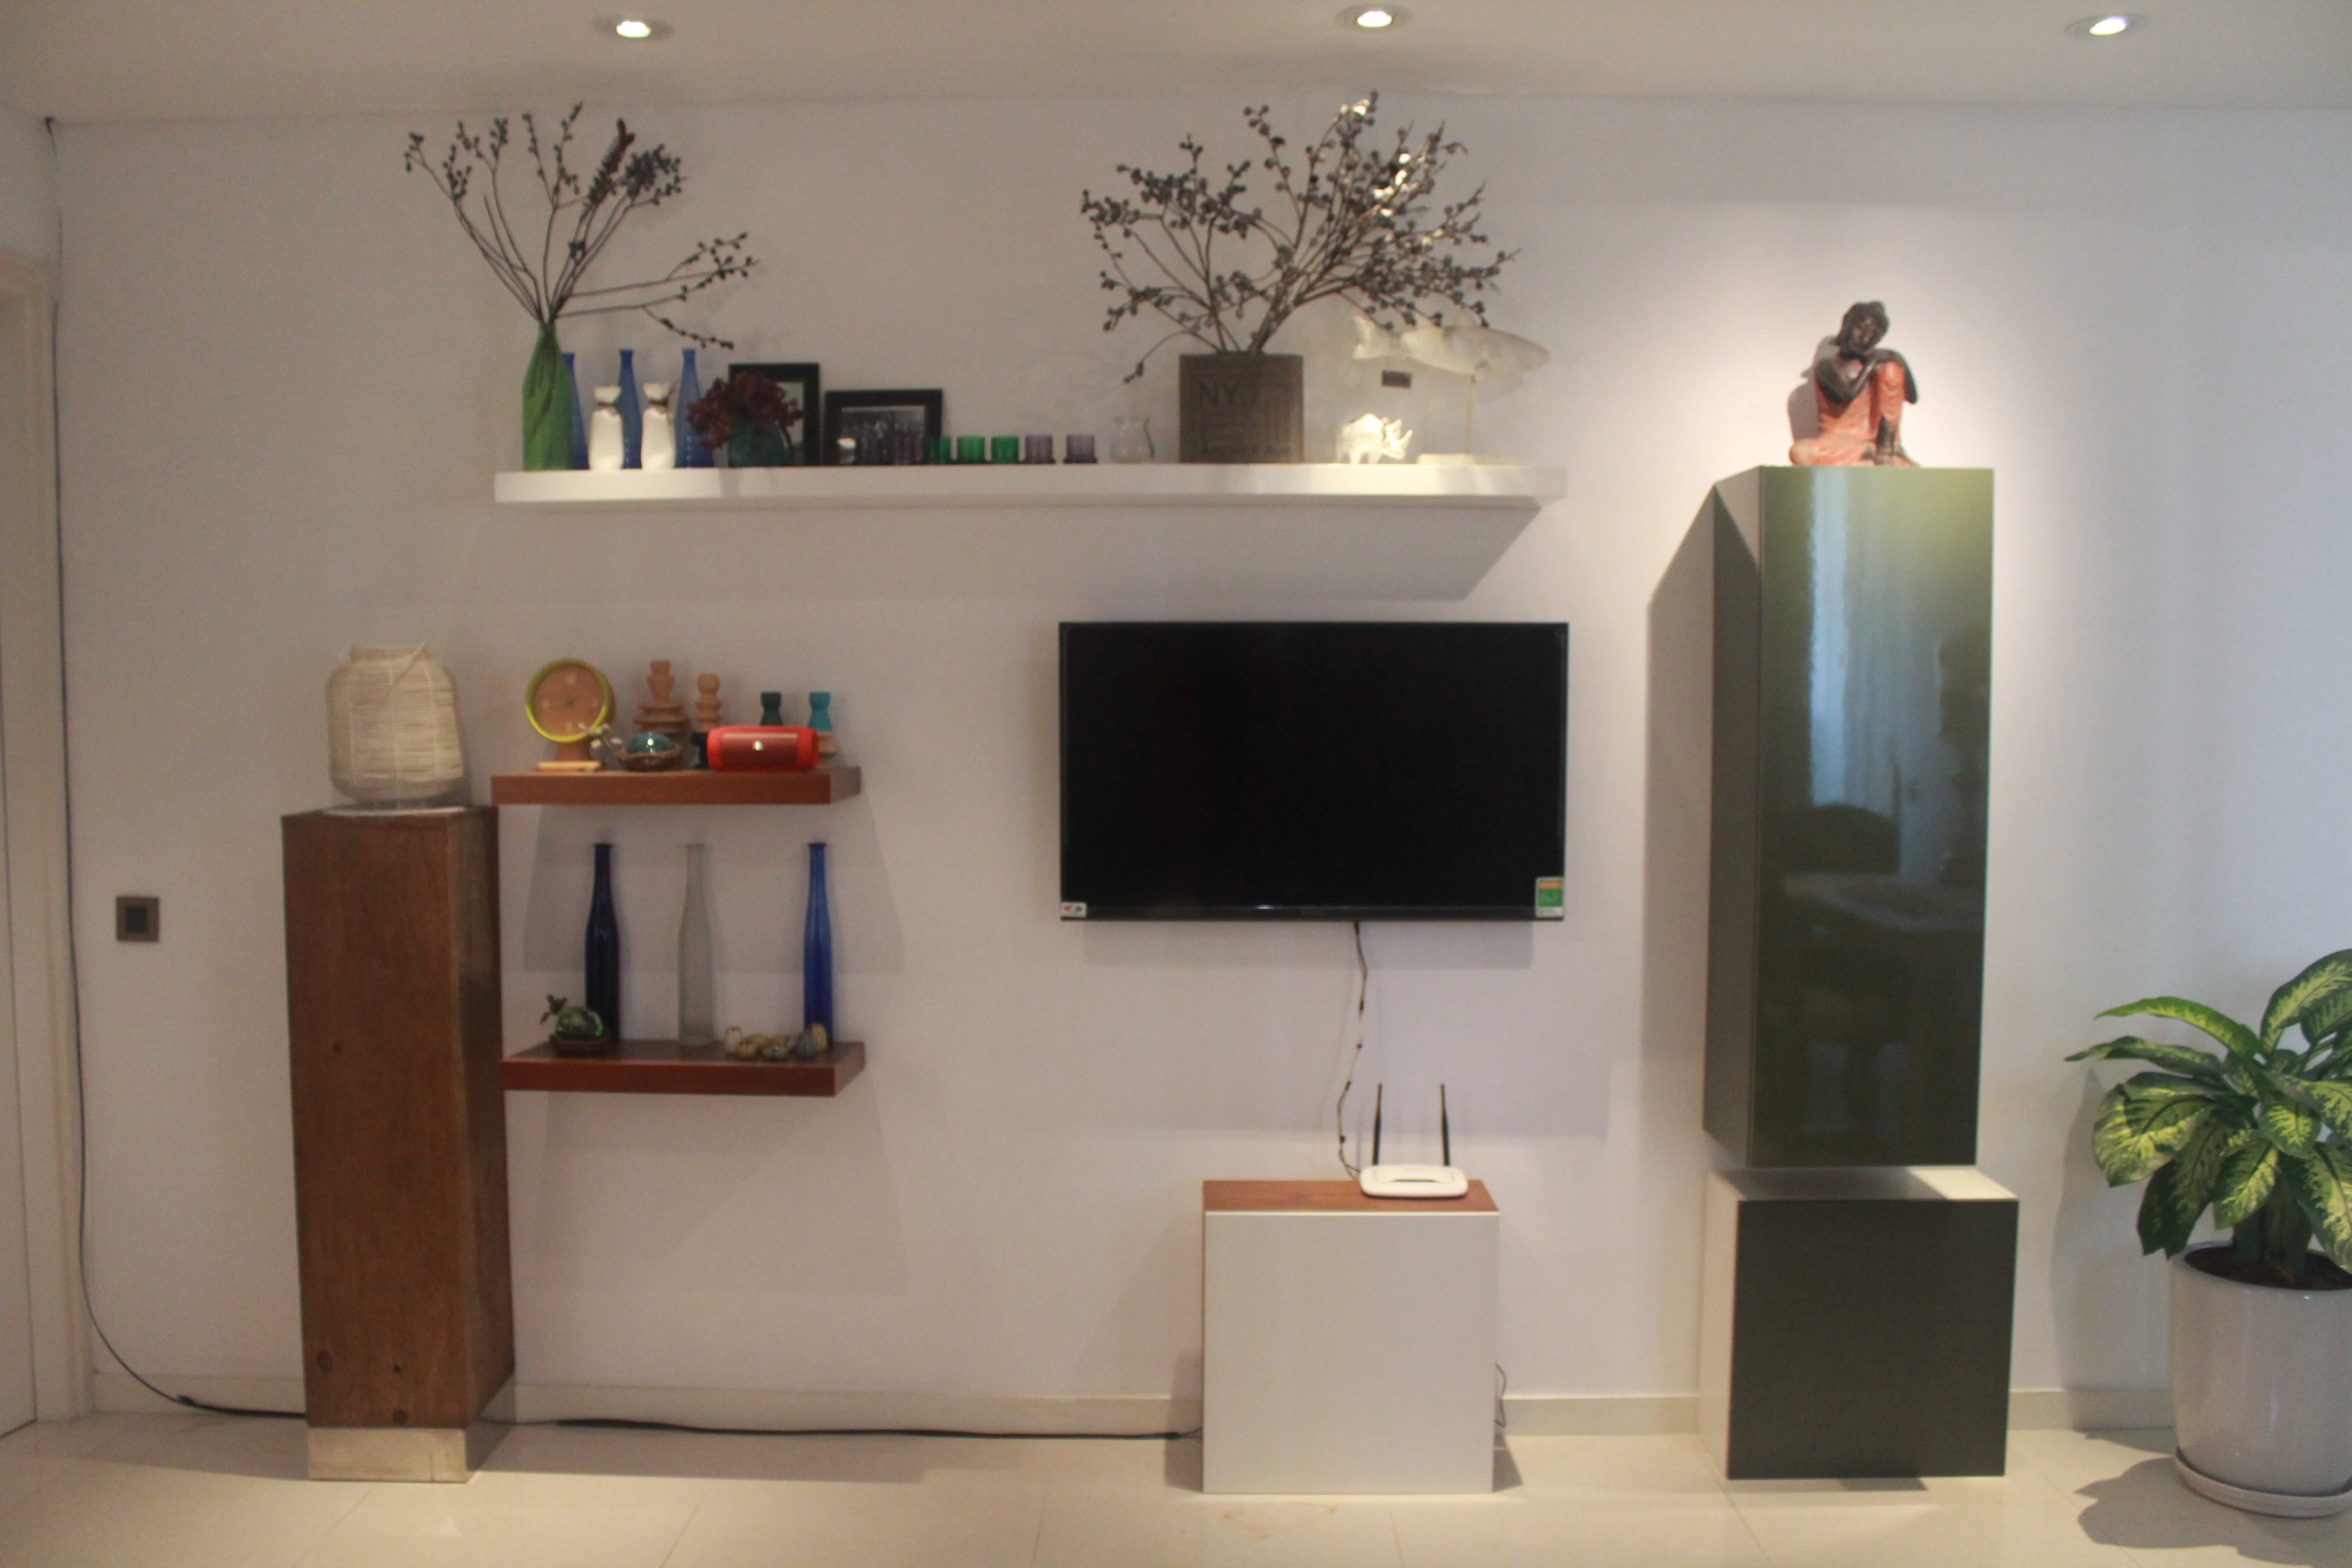 saigon pearl apartment for rent in binh thanh district hcmc D201237(17)